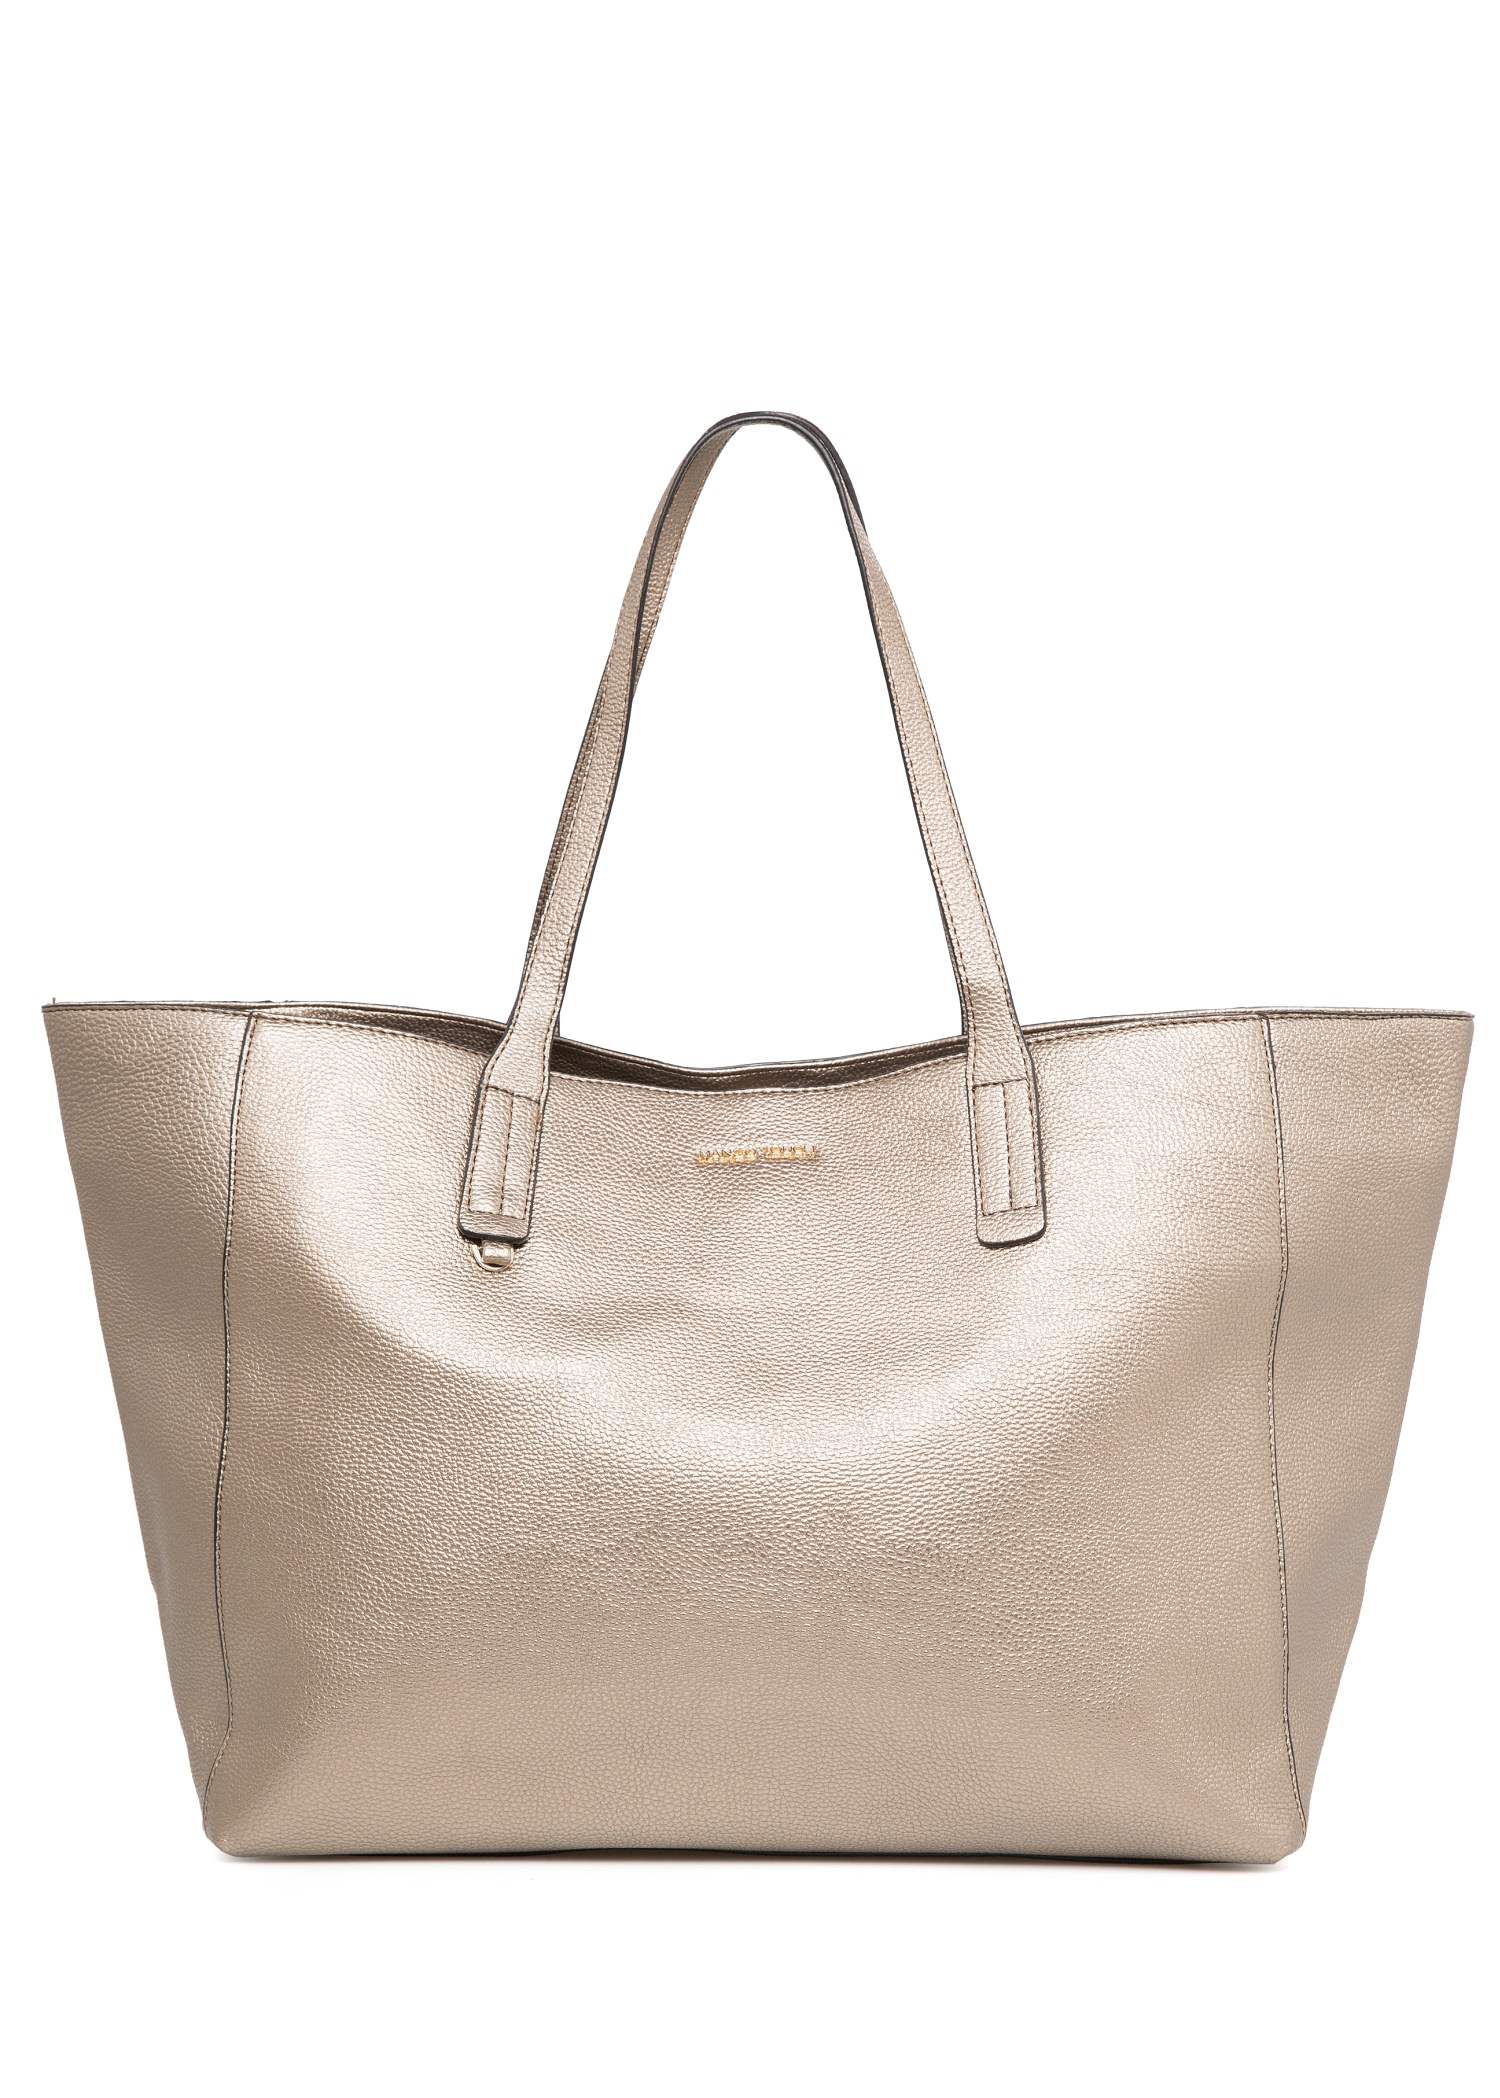 Pebbled shopper bag - Bags for Women | MANGO